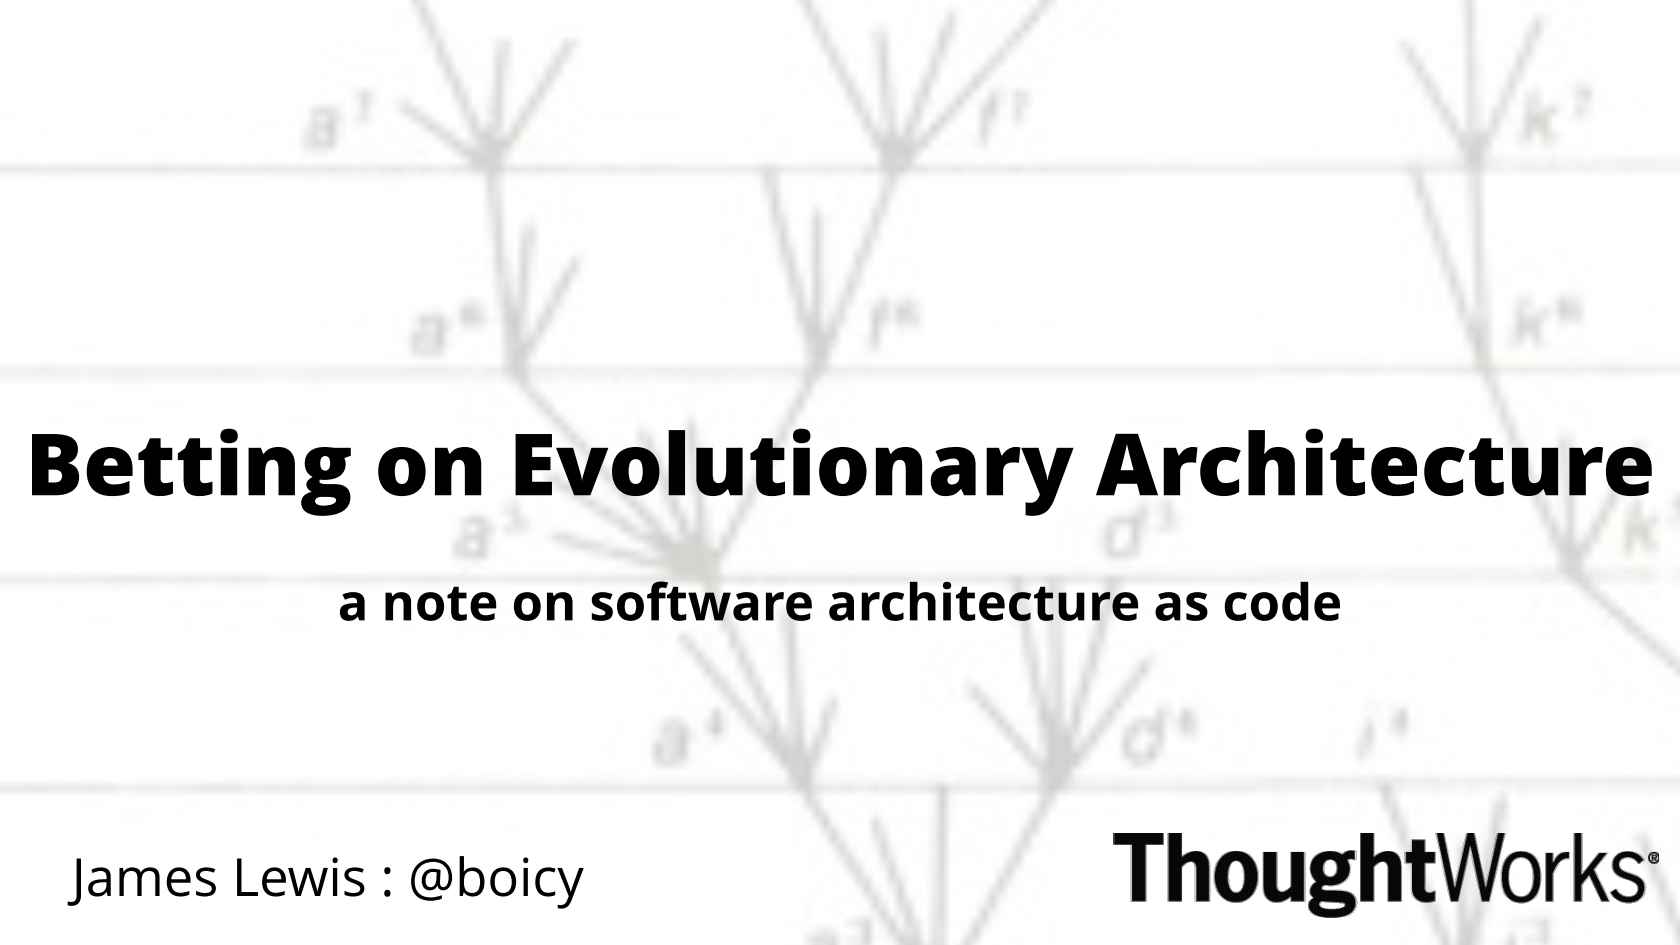 Betting on Evolutionary Architecture: A Note on Software